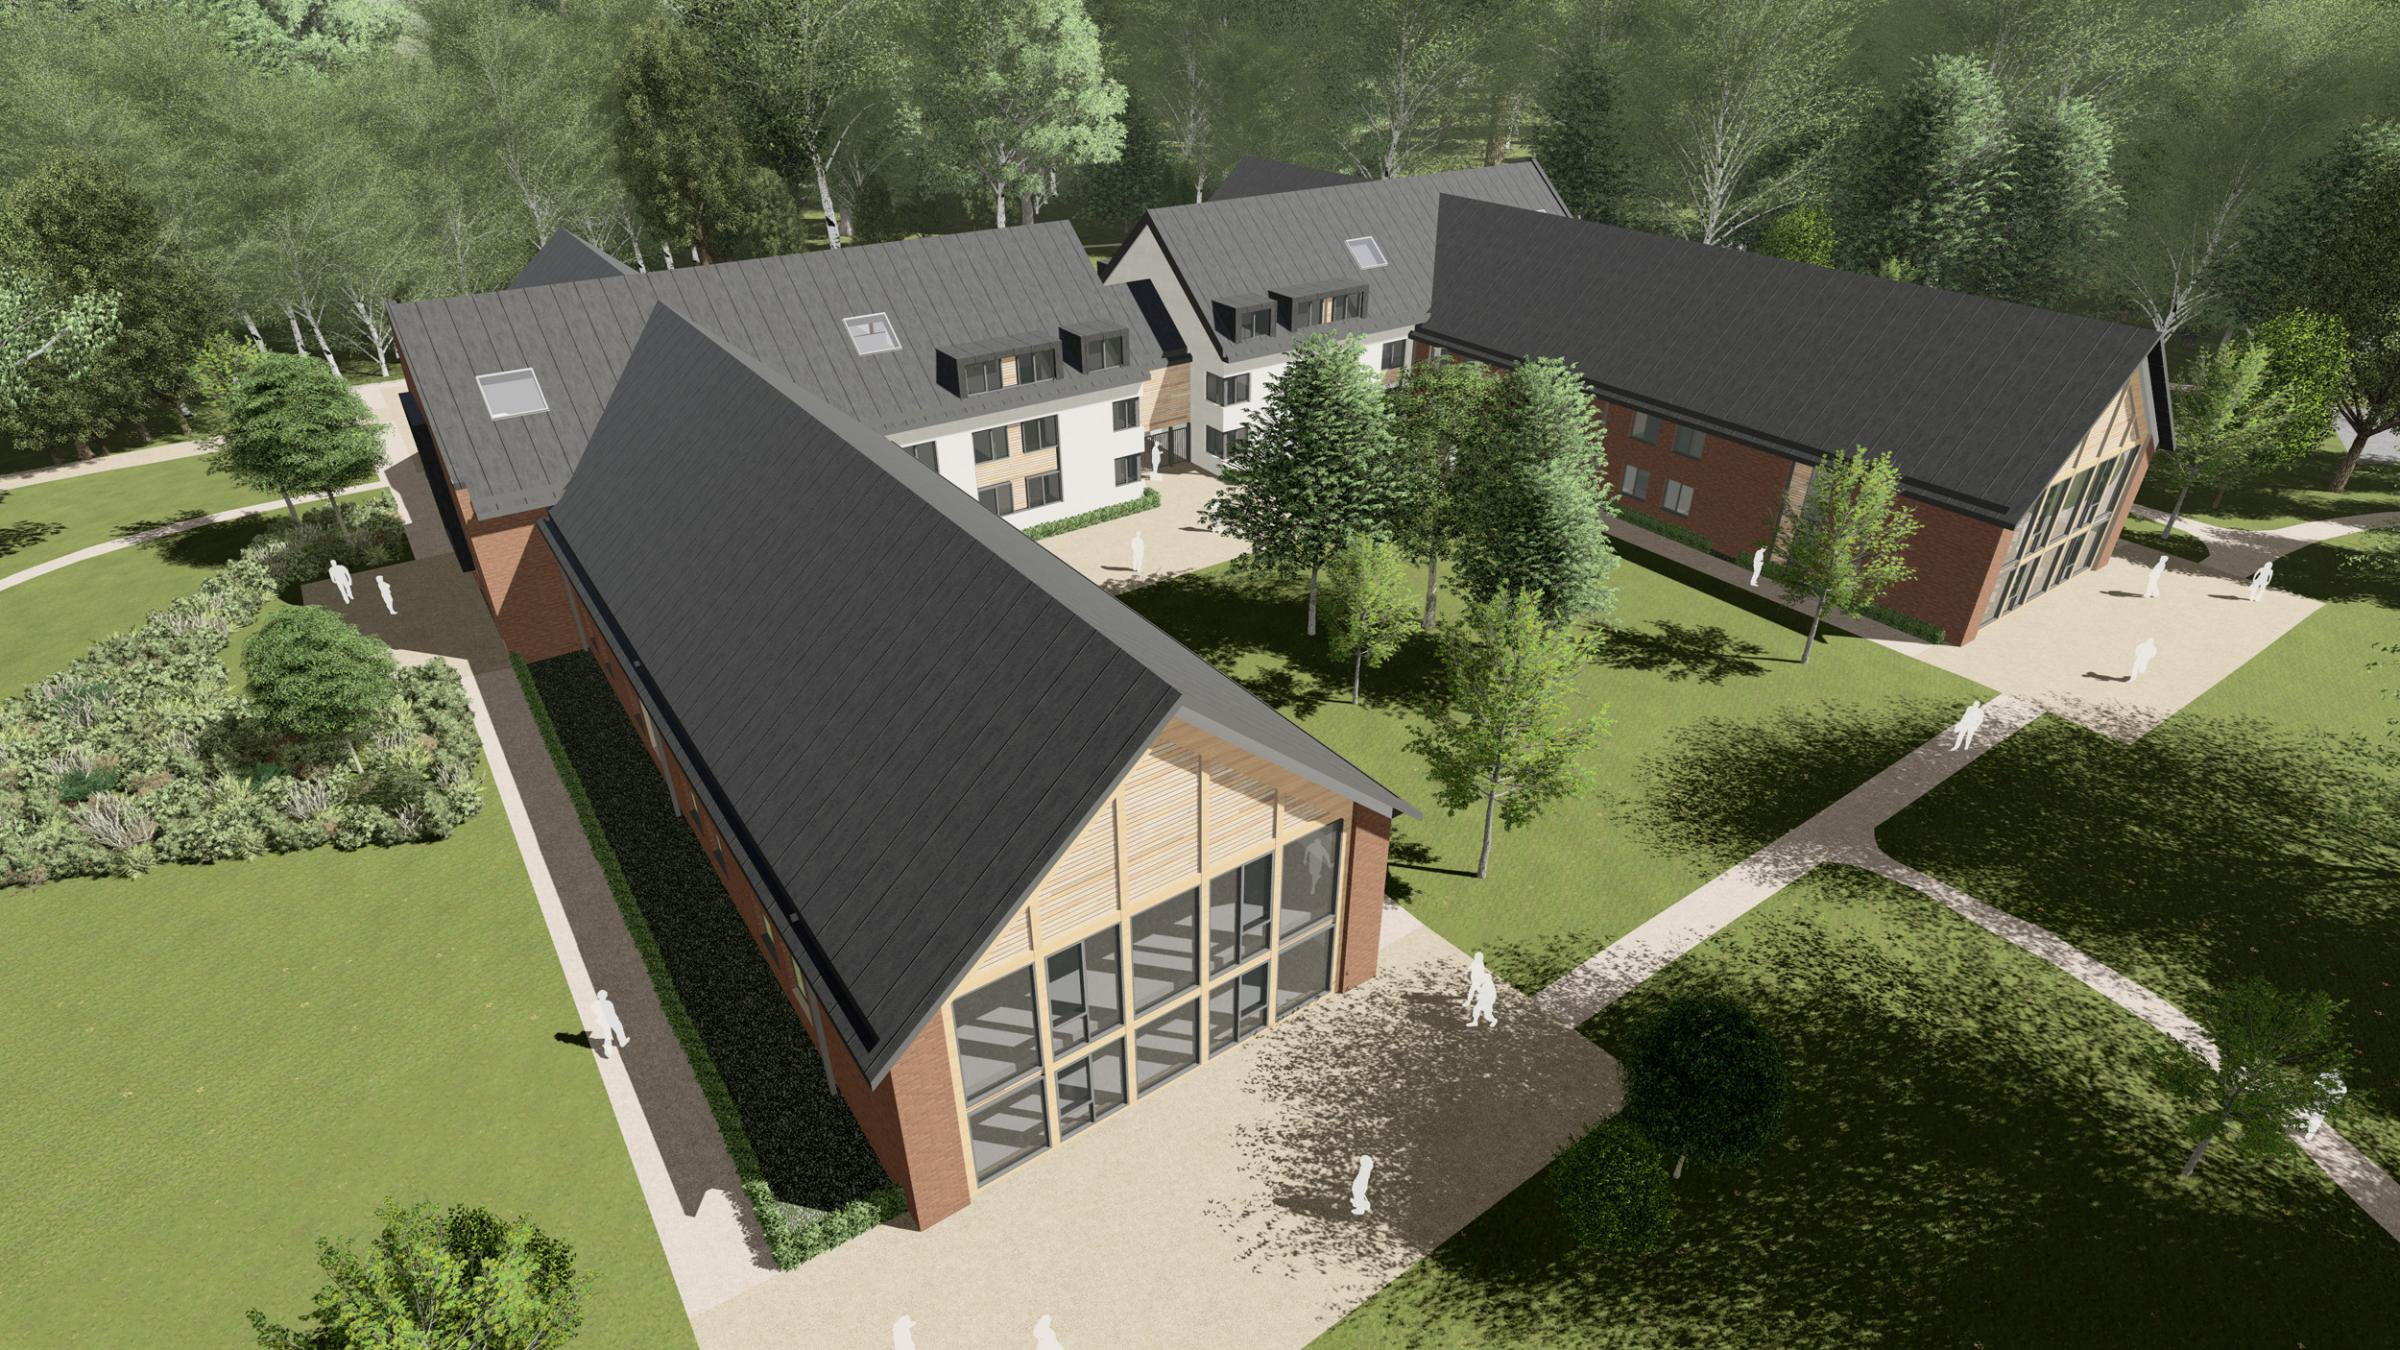 An artist's impression of how the new Sherfield School building will look